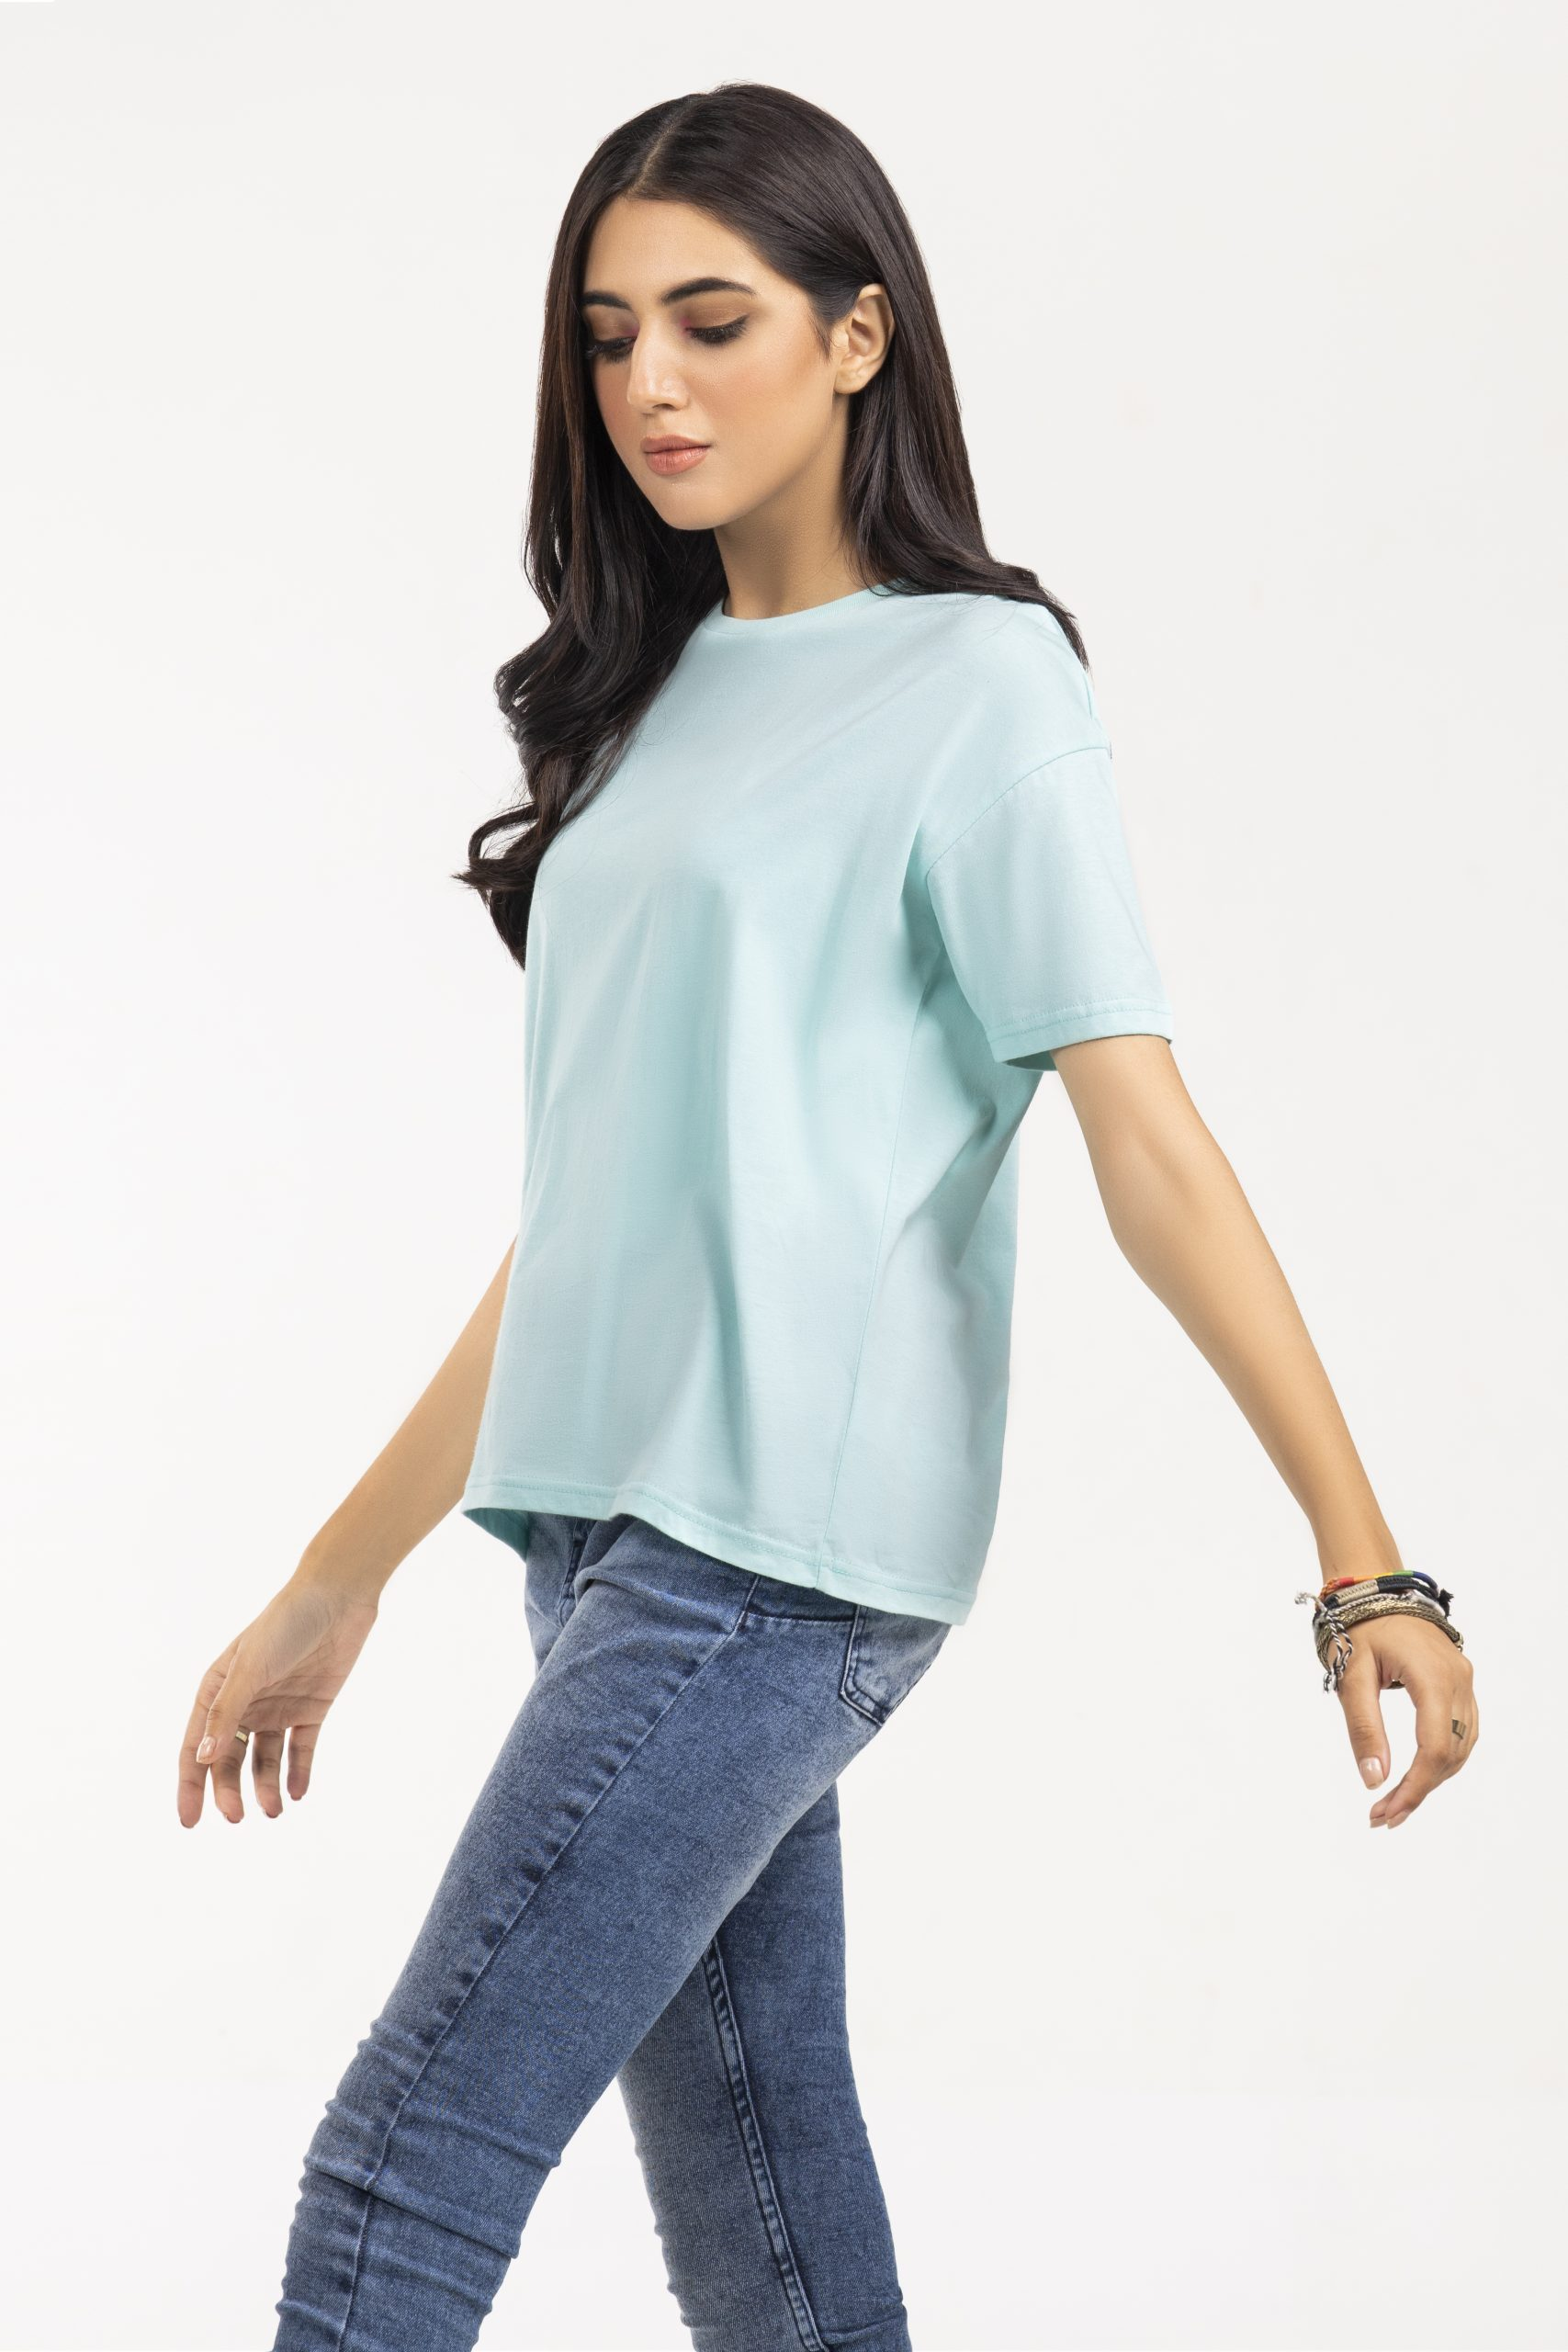 5 T-SHIRTS STYLES FOR WOMEN FROM IDEAS short